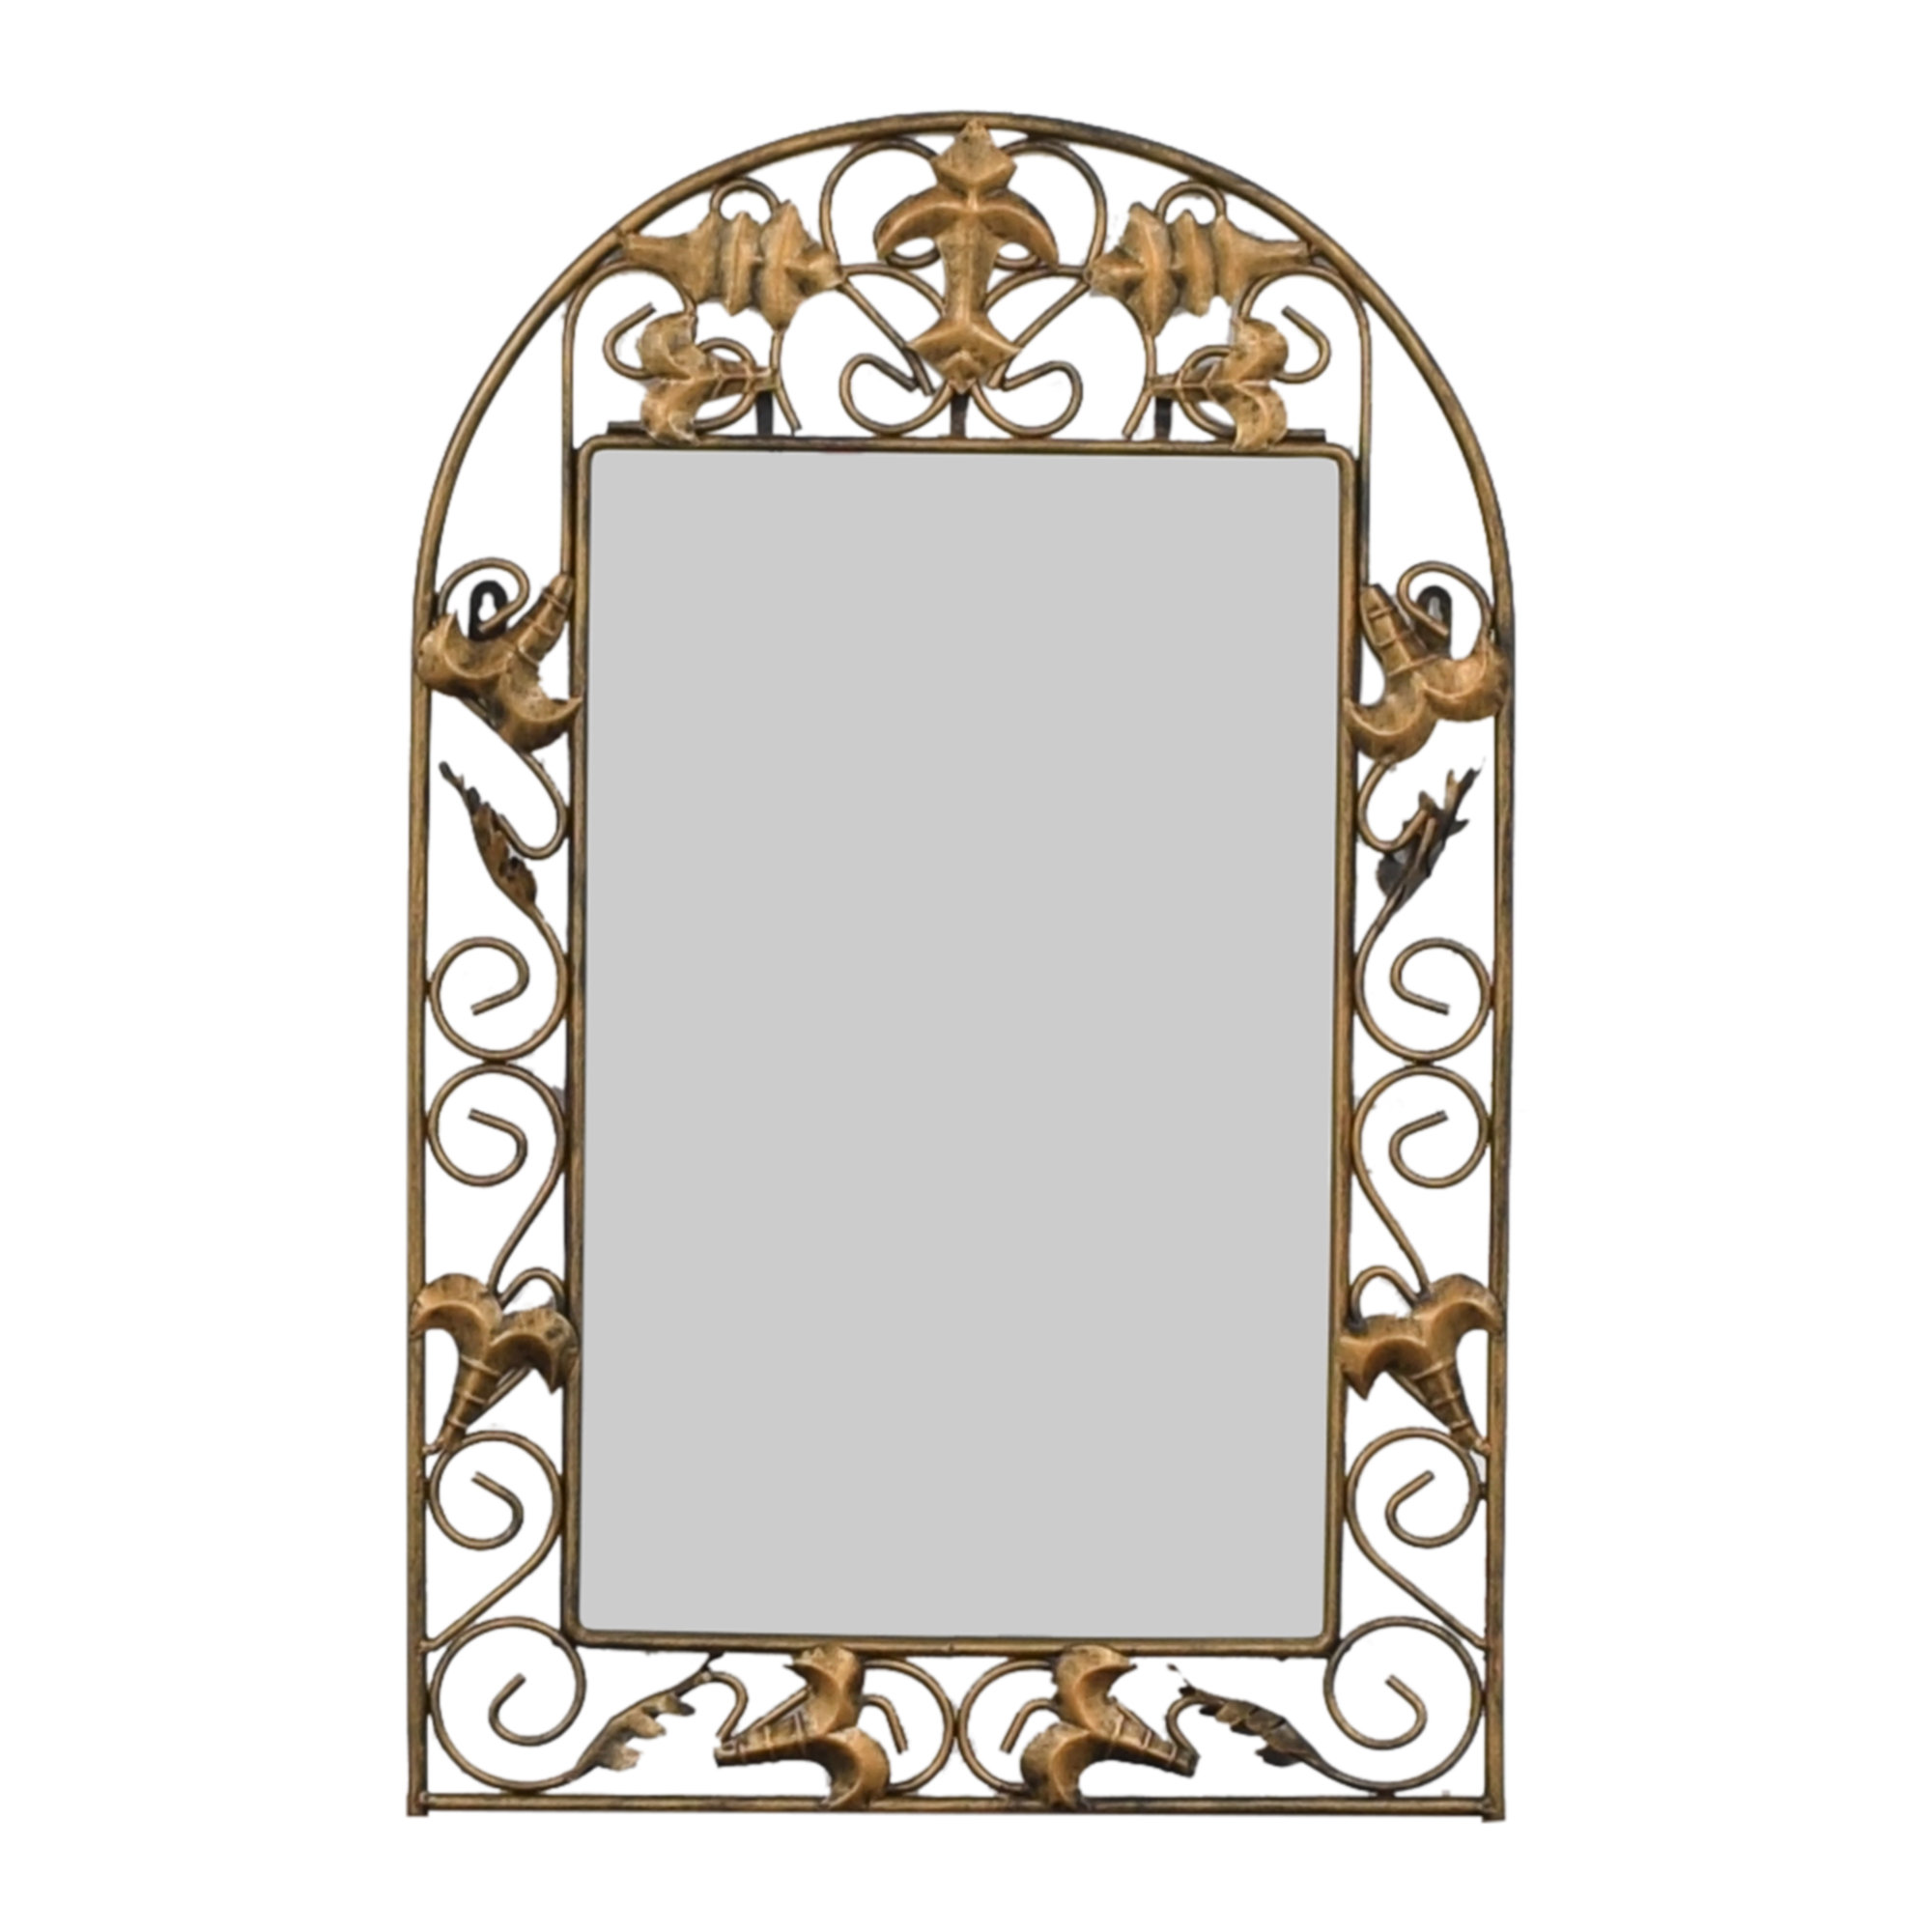 Anthropologie Decorative Arch Mirror / Mirrors